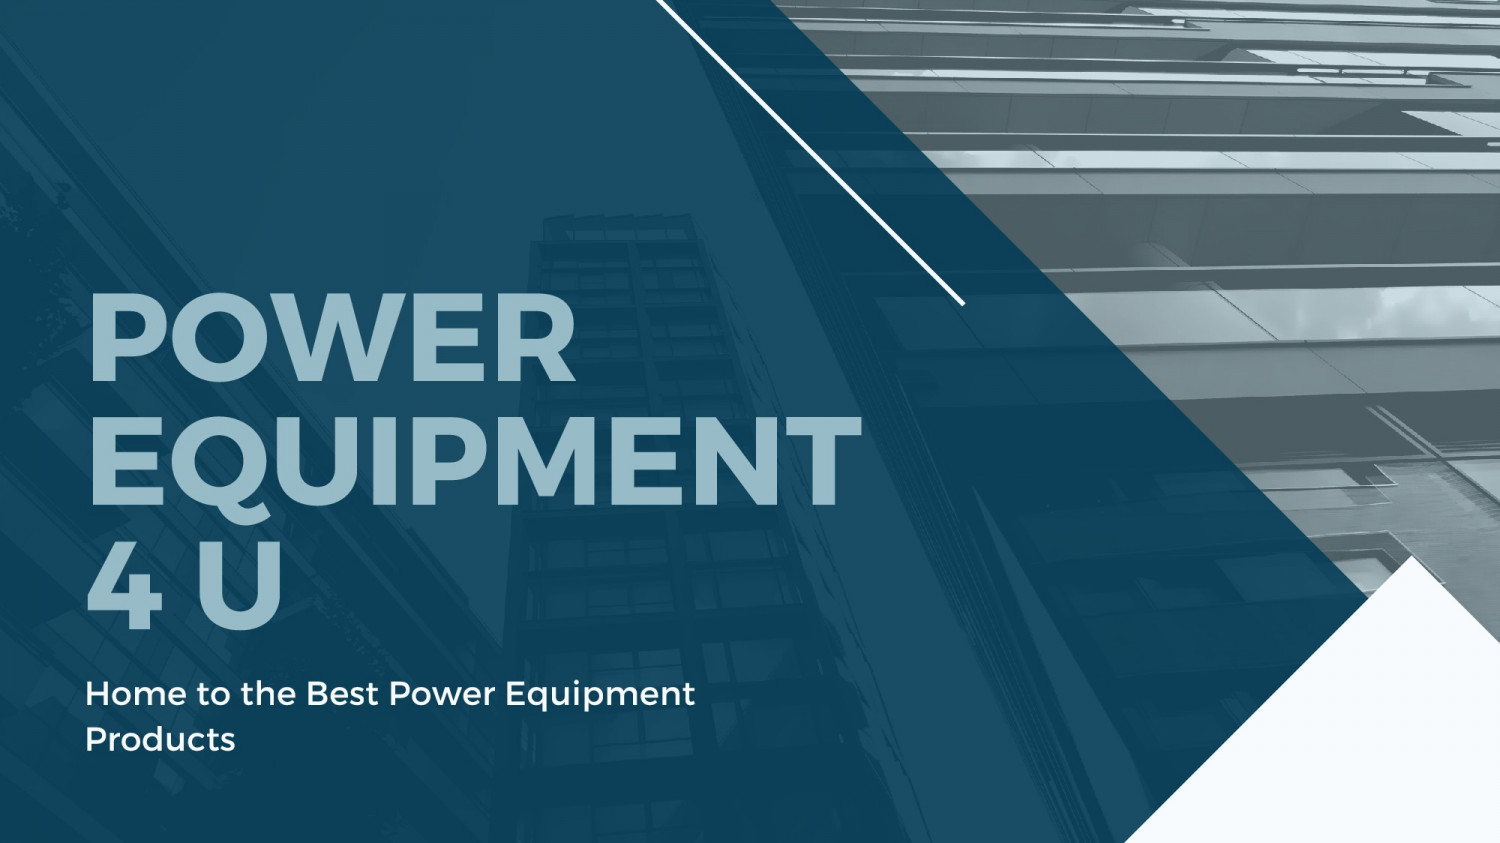 Power Equipment Products in UK Infographic